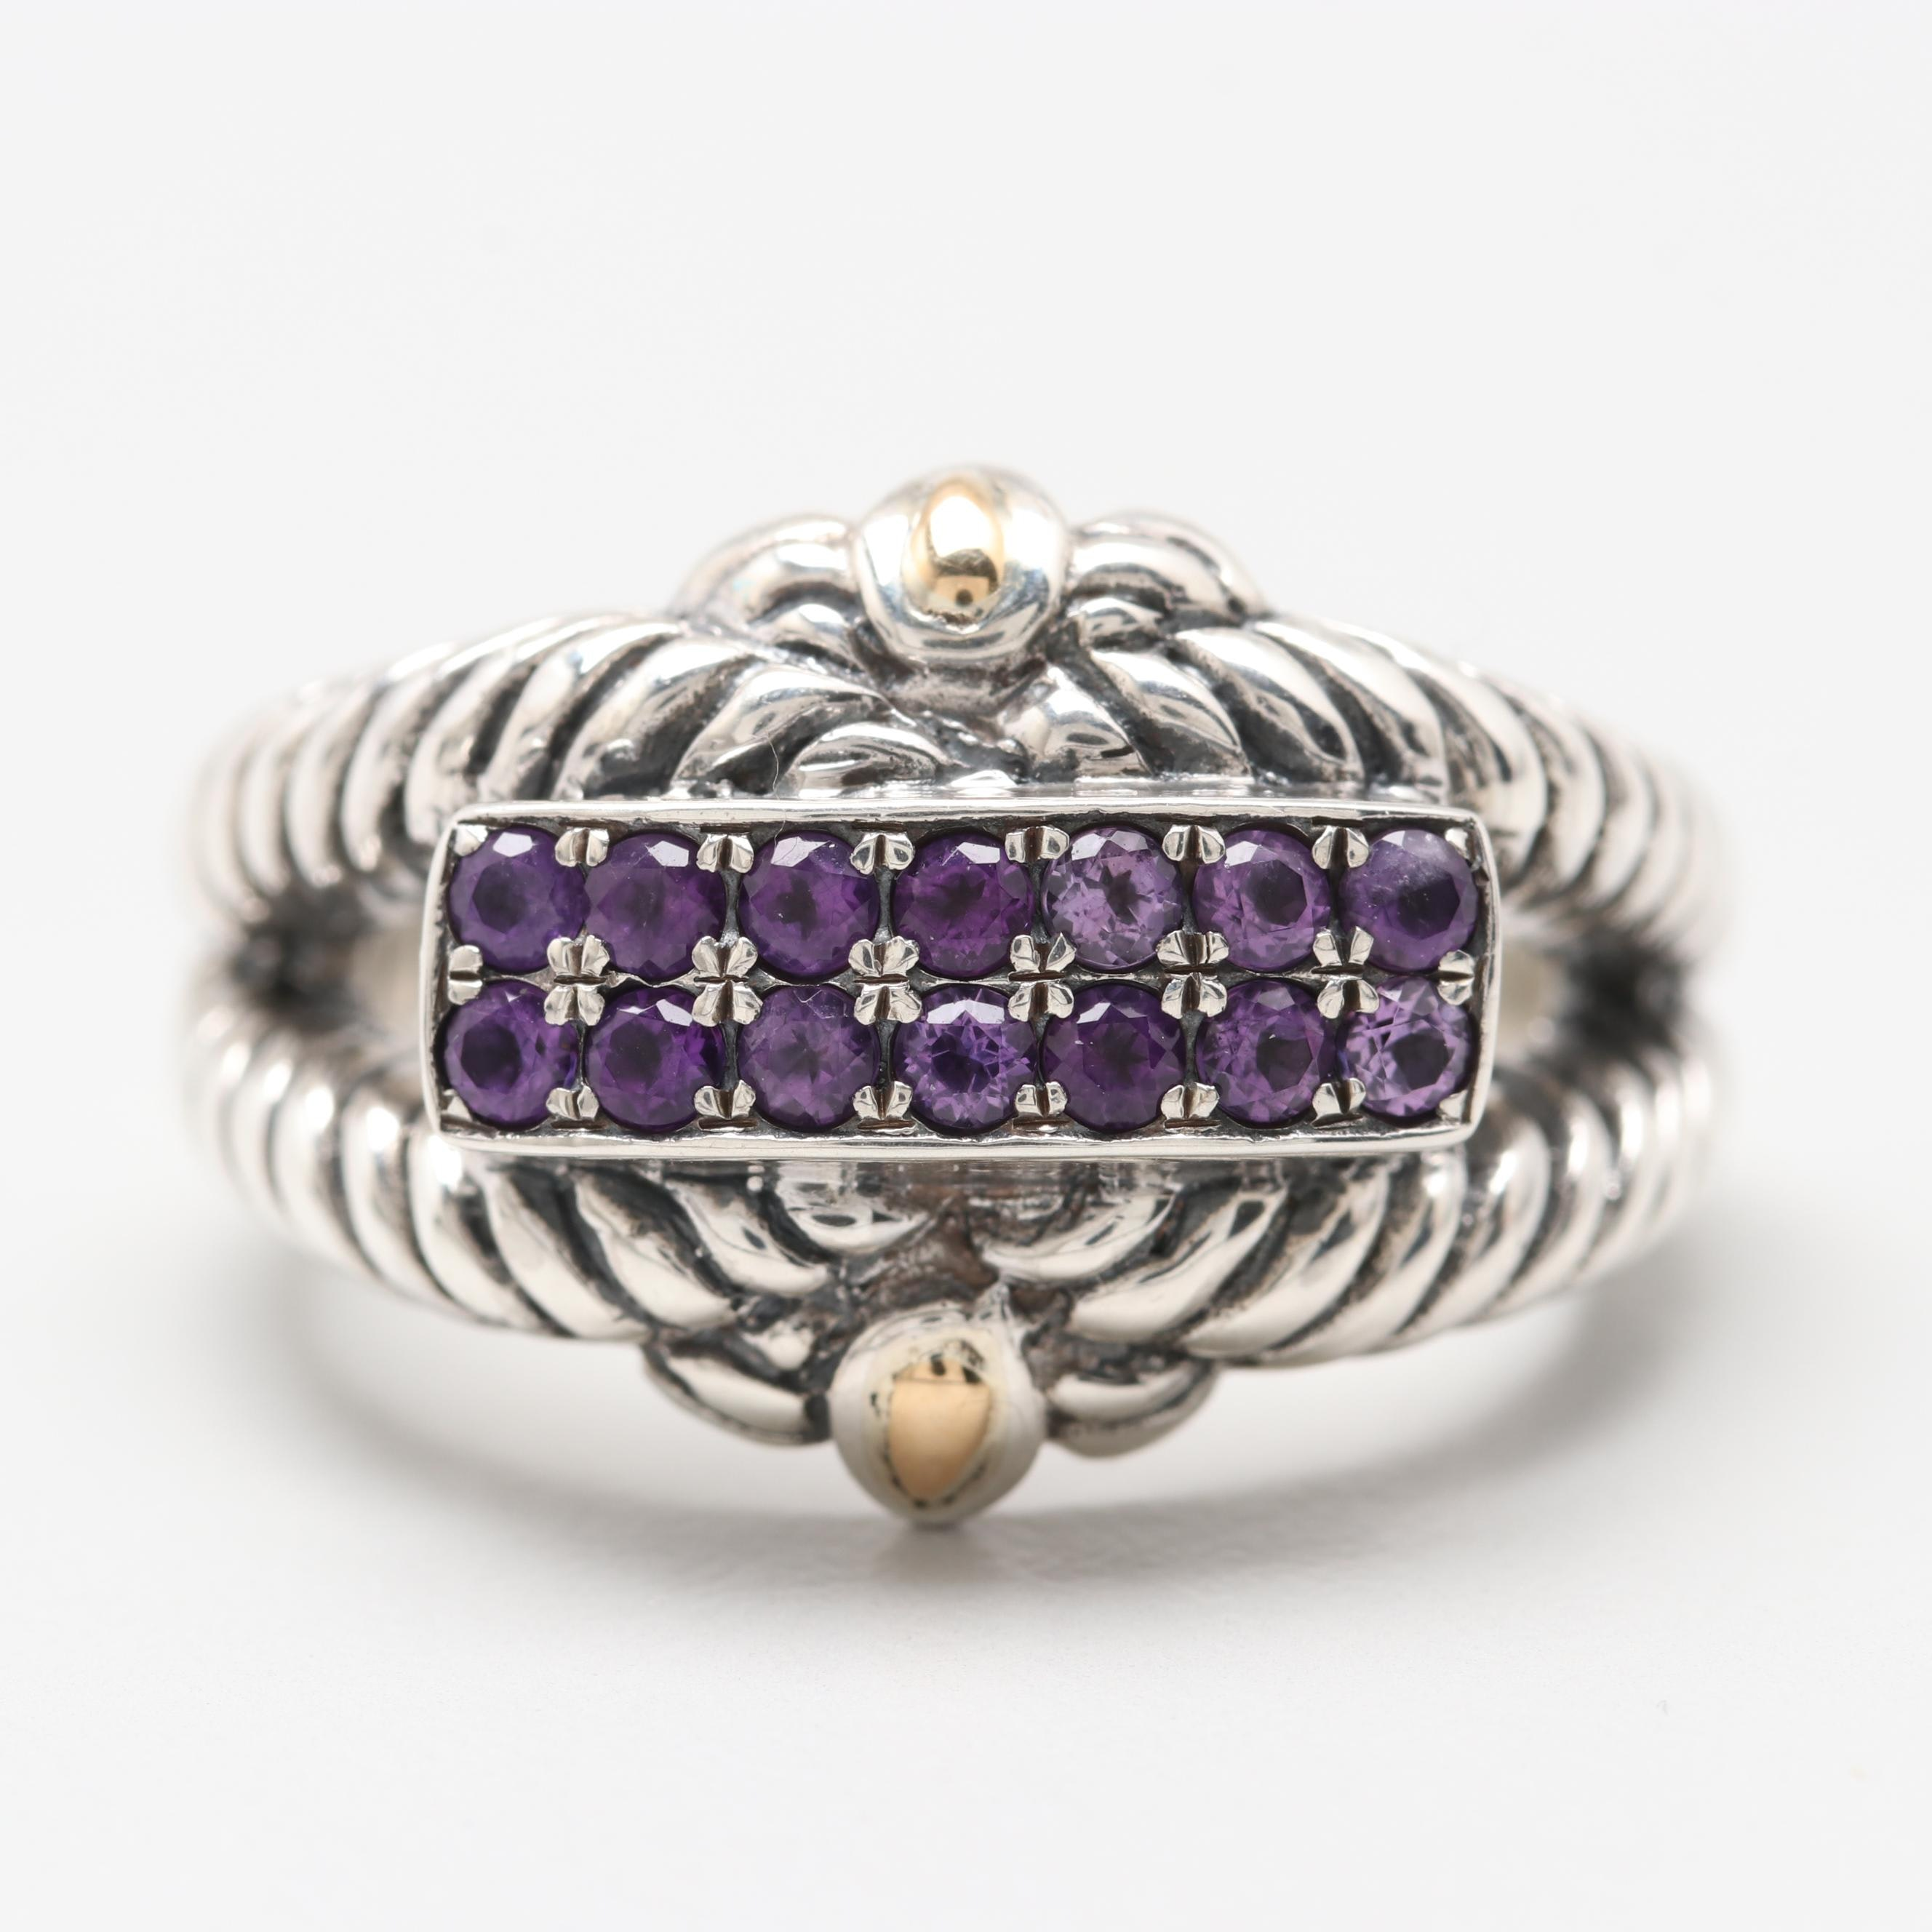 Robert Manse Sterling Silver Amethyst Ring with 18K Accents